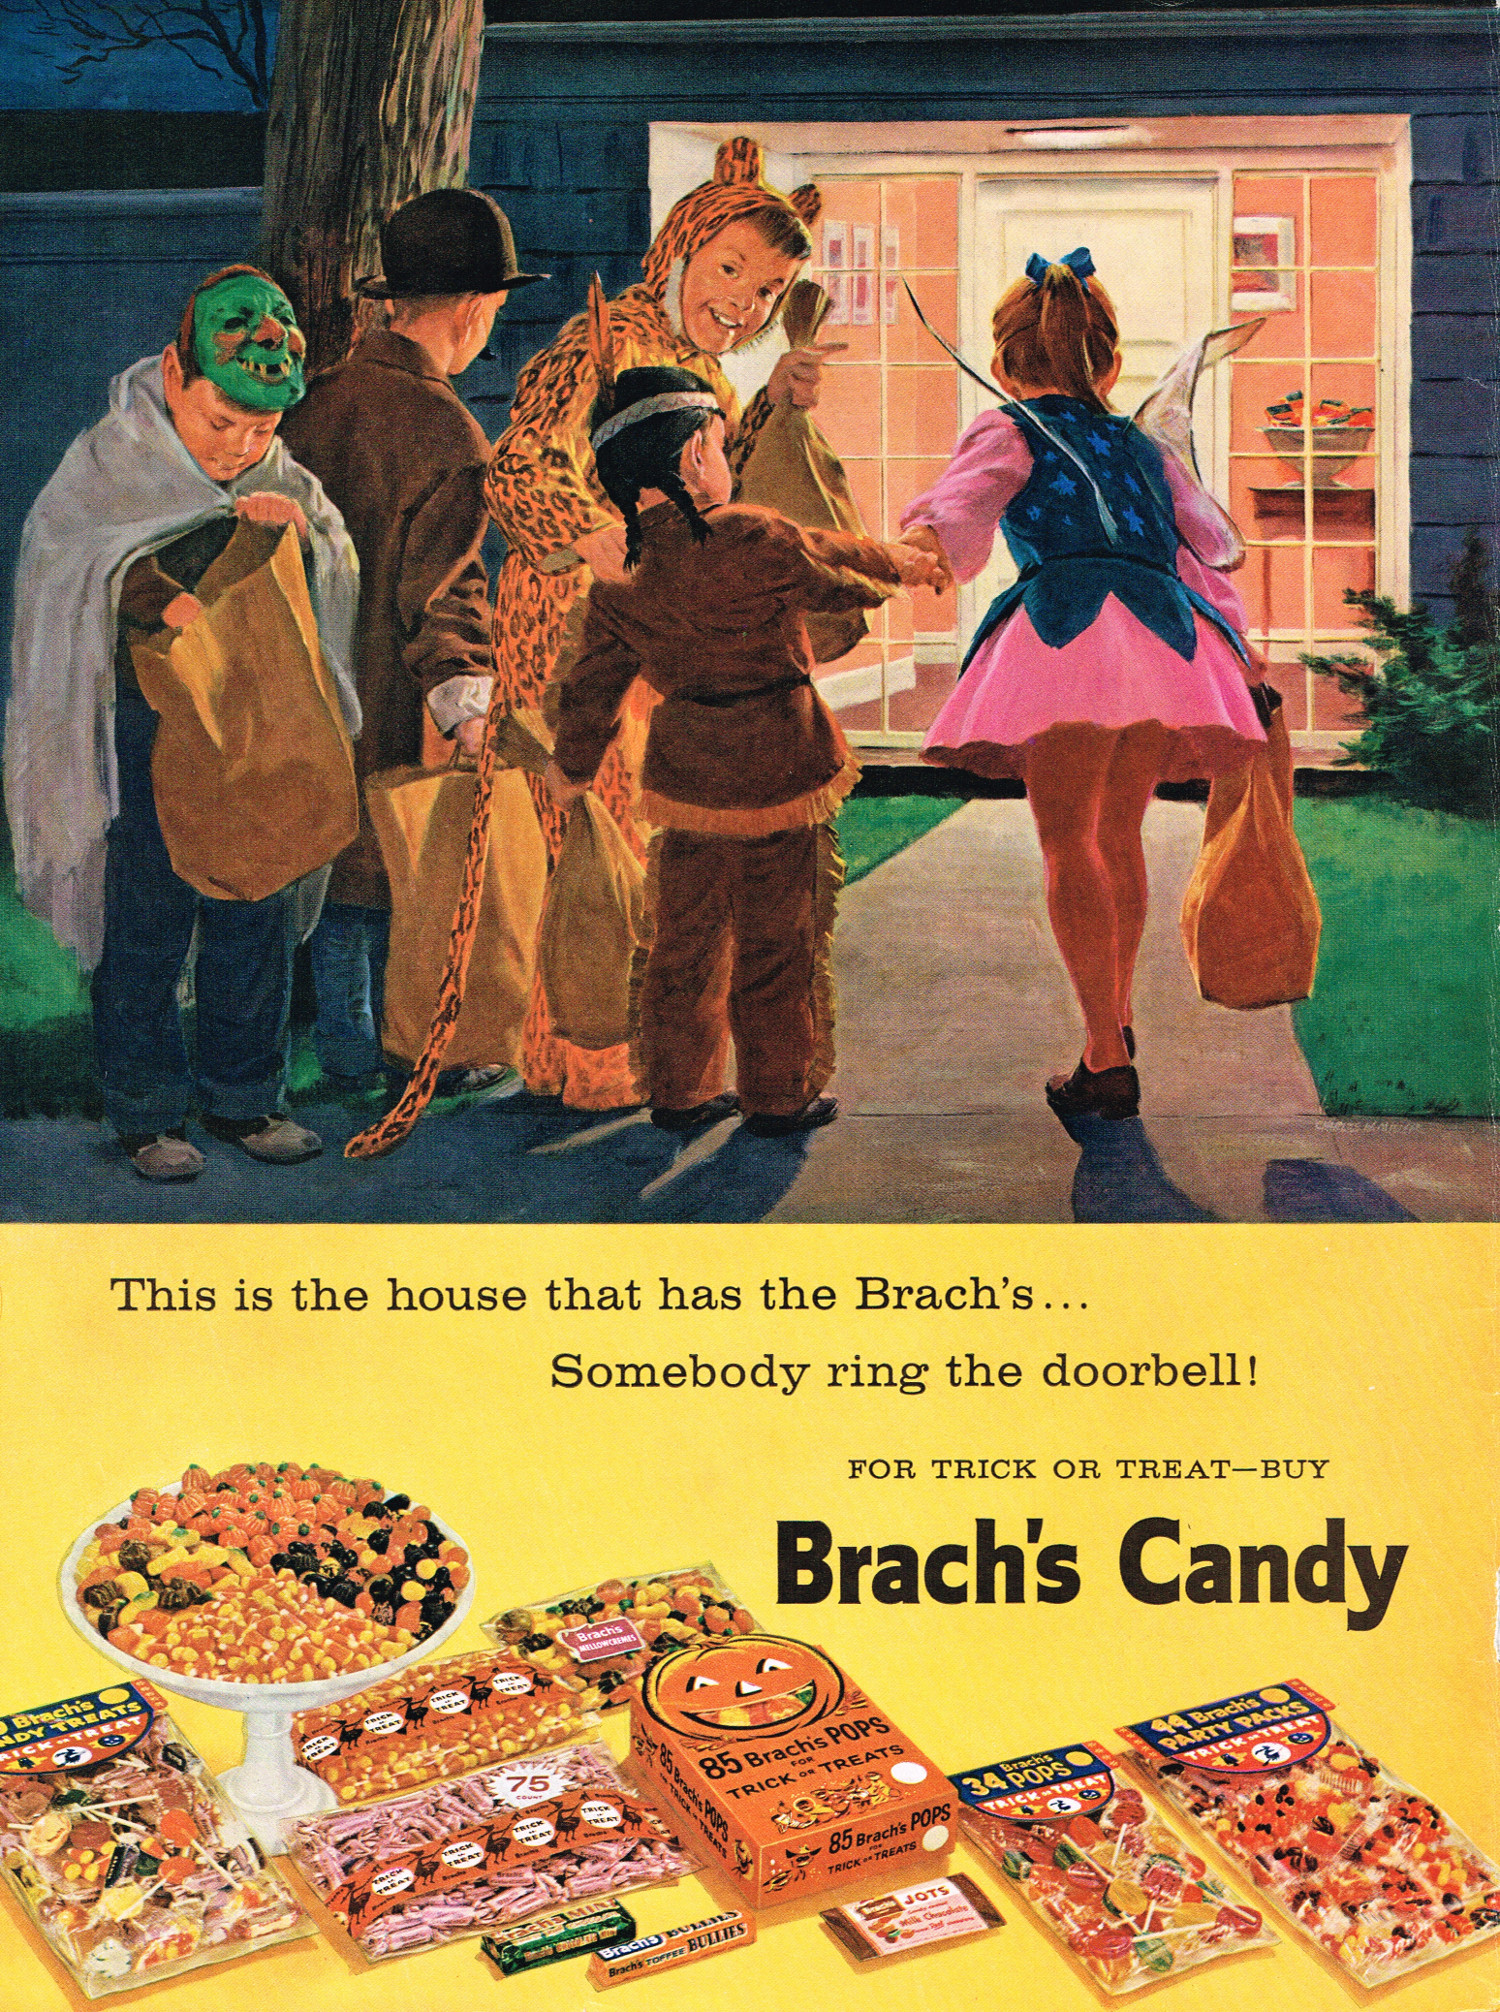 Vintage Halloween Ads.Vintage Halloween Brach S Candy Advertising From Zombos Closet